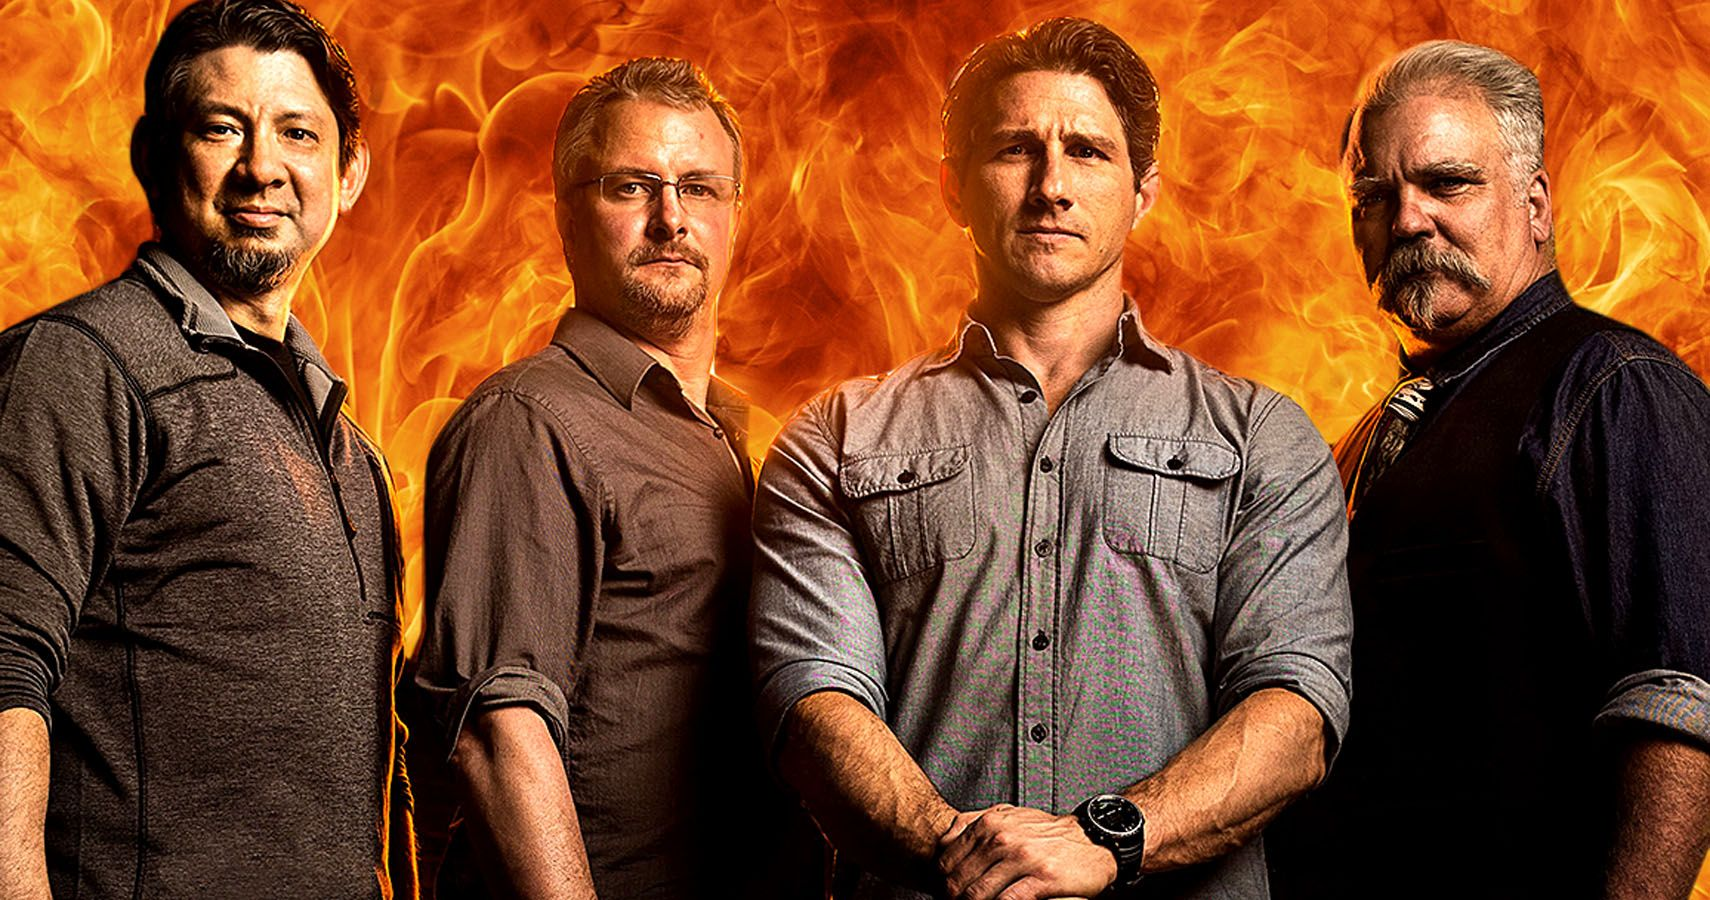 10 Things On Forged In Fire That Are Totally Fake (And 5 Real)